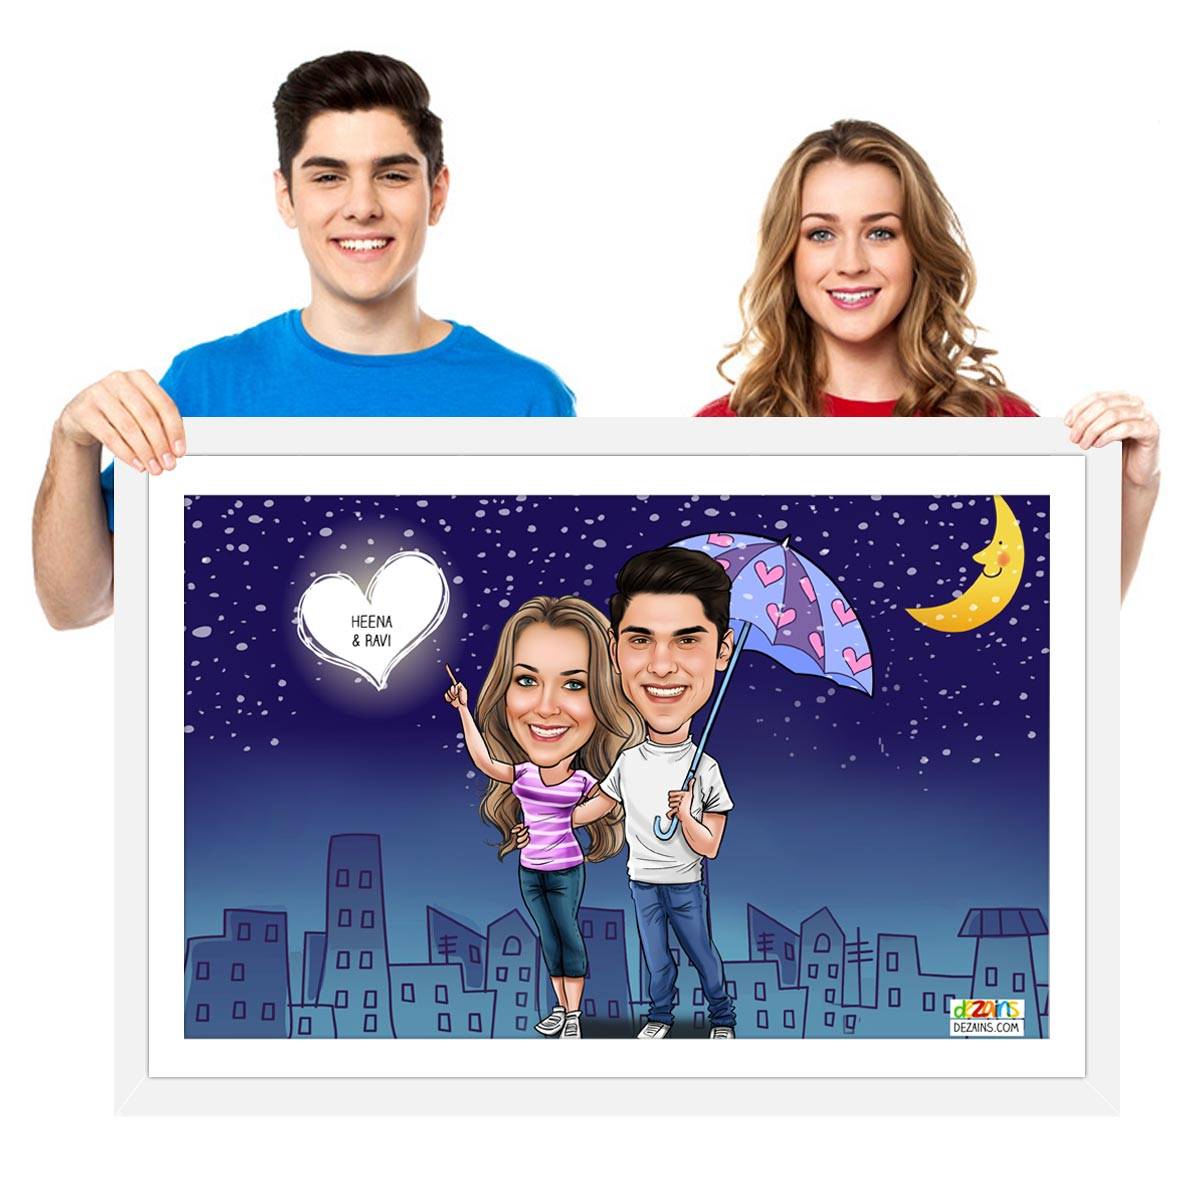 couple-watching-the-night-sky-caricature-frame-by-dezains1